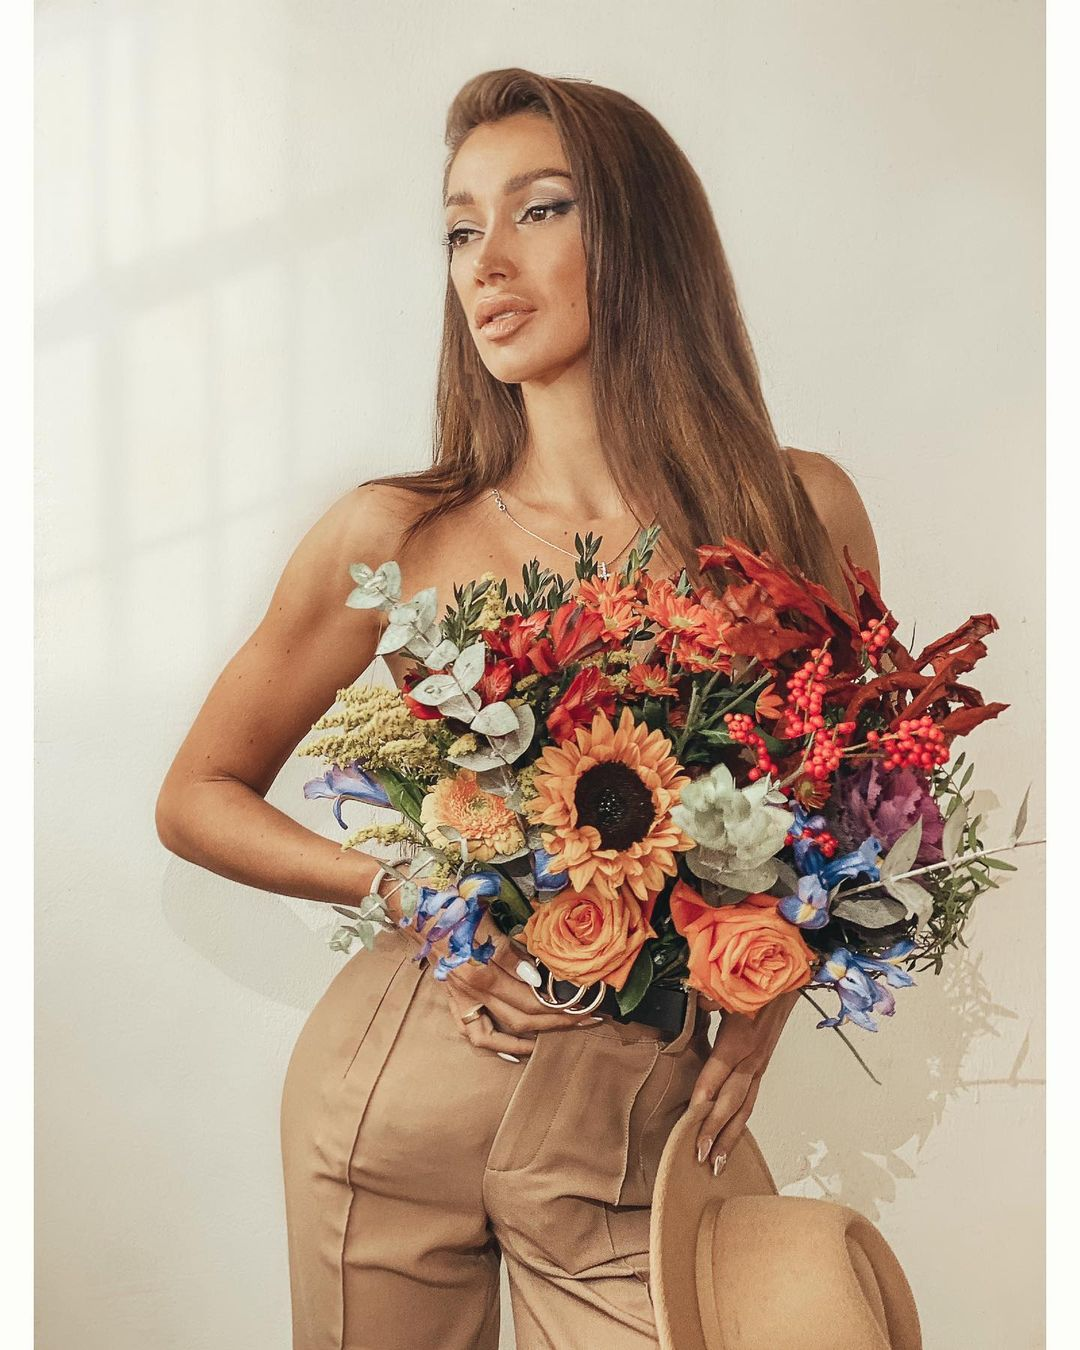 Elegant Julia Kashirova with a bouquet of flowers and long hair